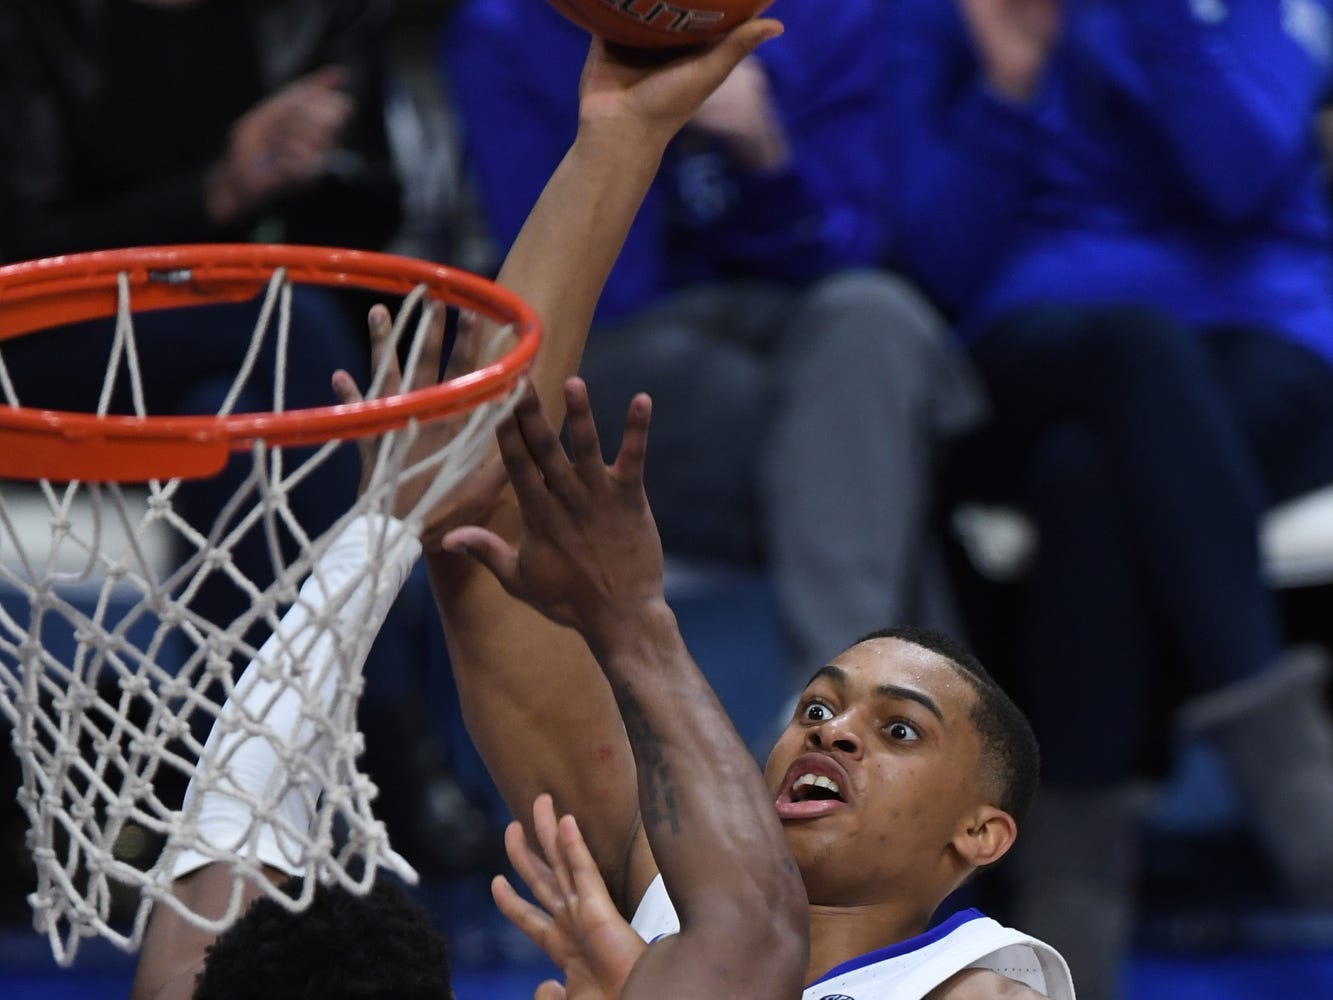 UK G Keldon Johnson puts up the ball during the University of Kentucky mens basketball game against Tennessee at Rupp Arena in Lexington, Kentucky on Saturday, February 16, 2019.